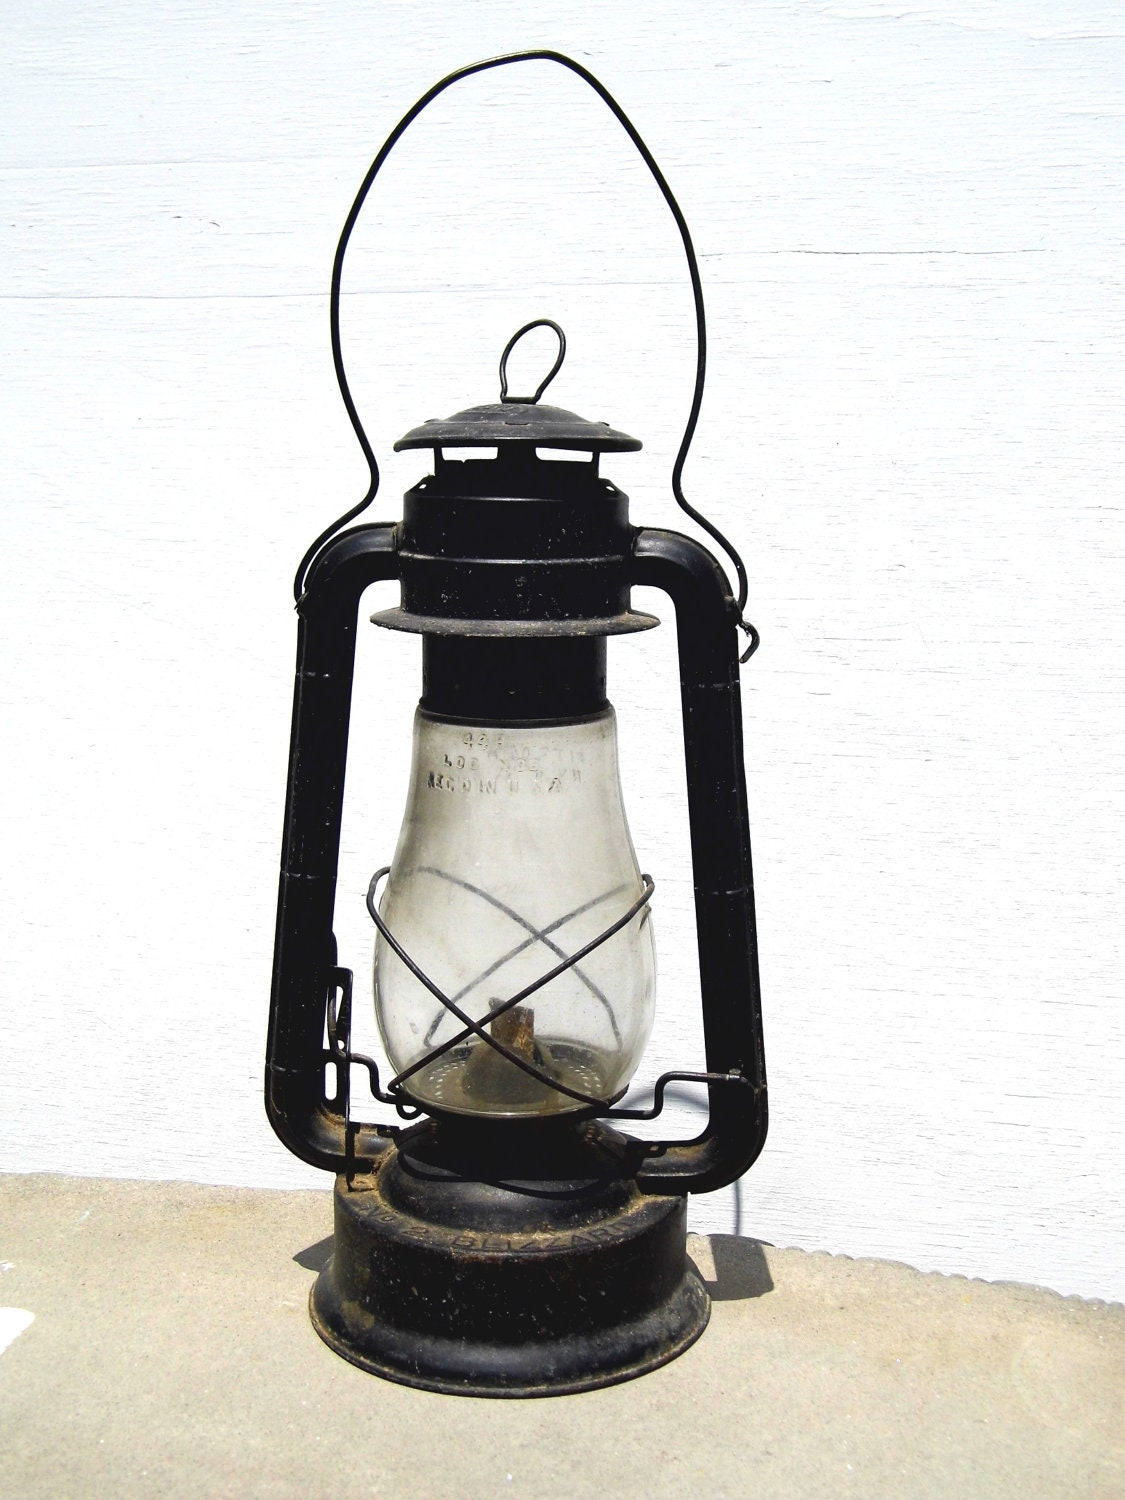 dietz lantern vintage lantern railroad lantern antique. Black Bedroom Furniture Sets. Home Design Ideas